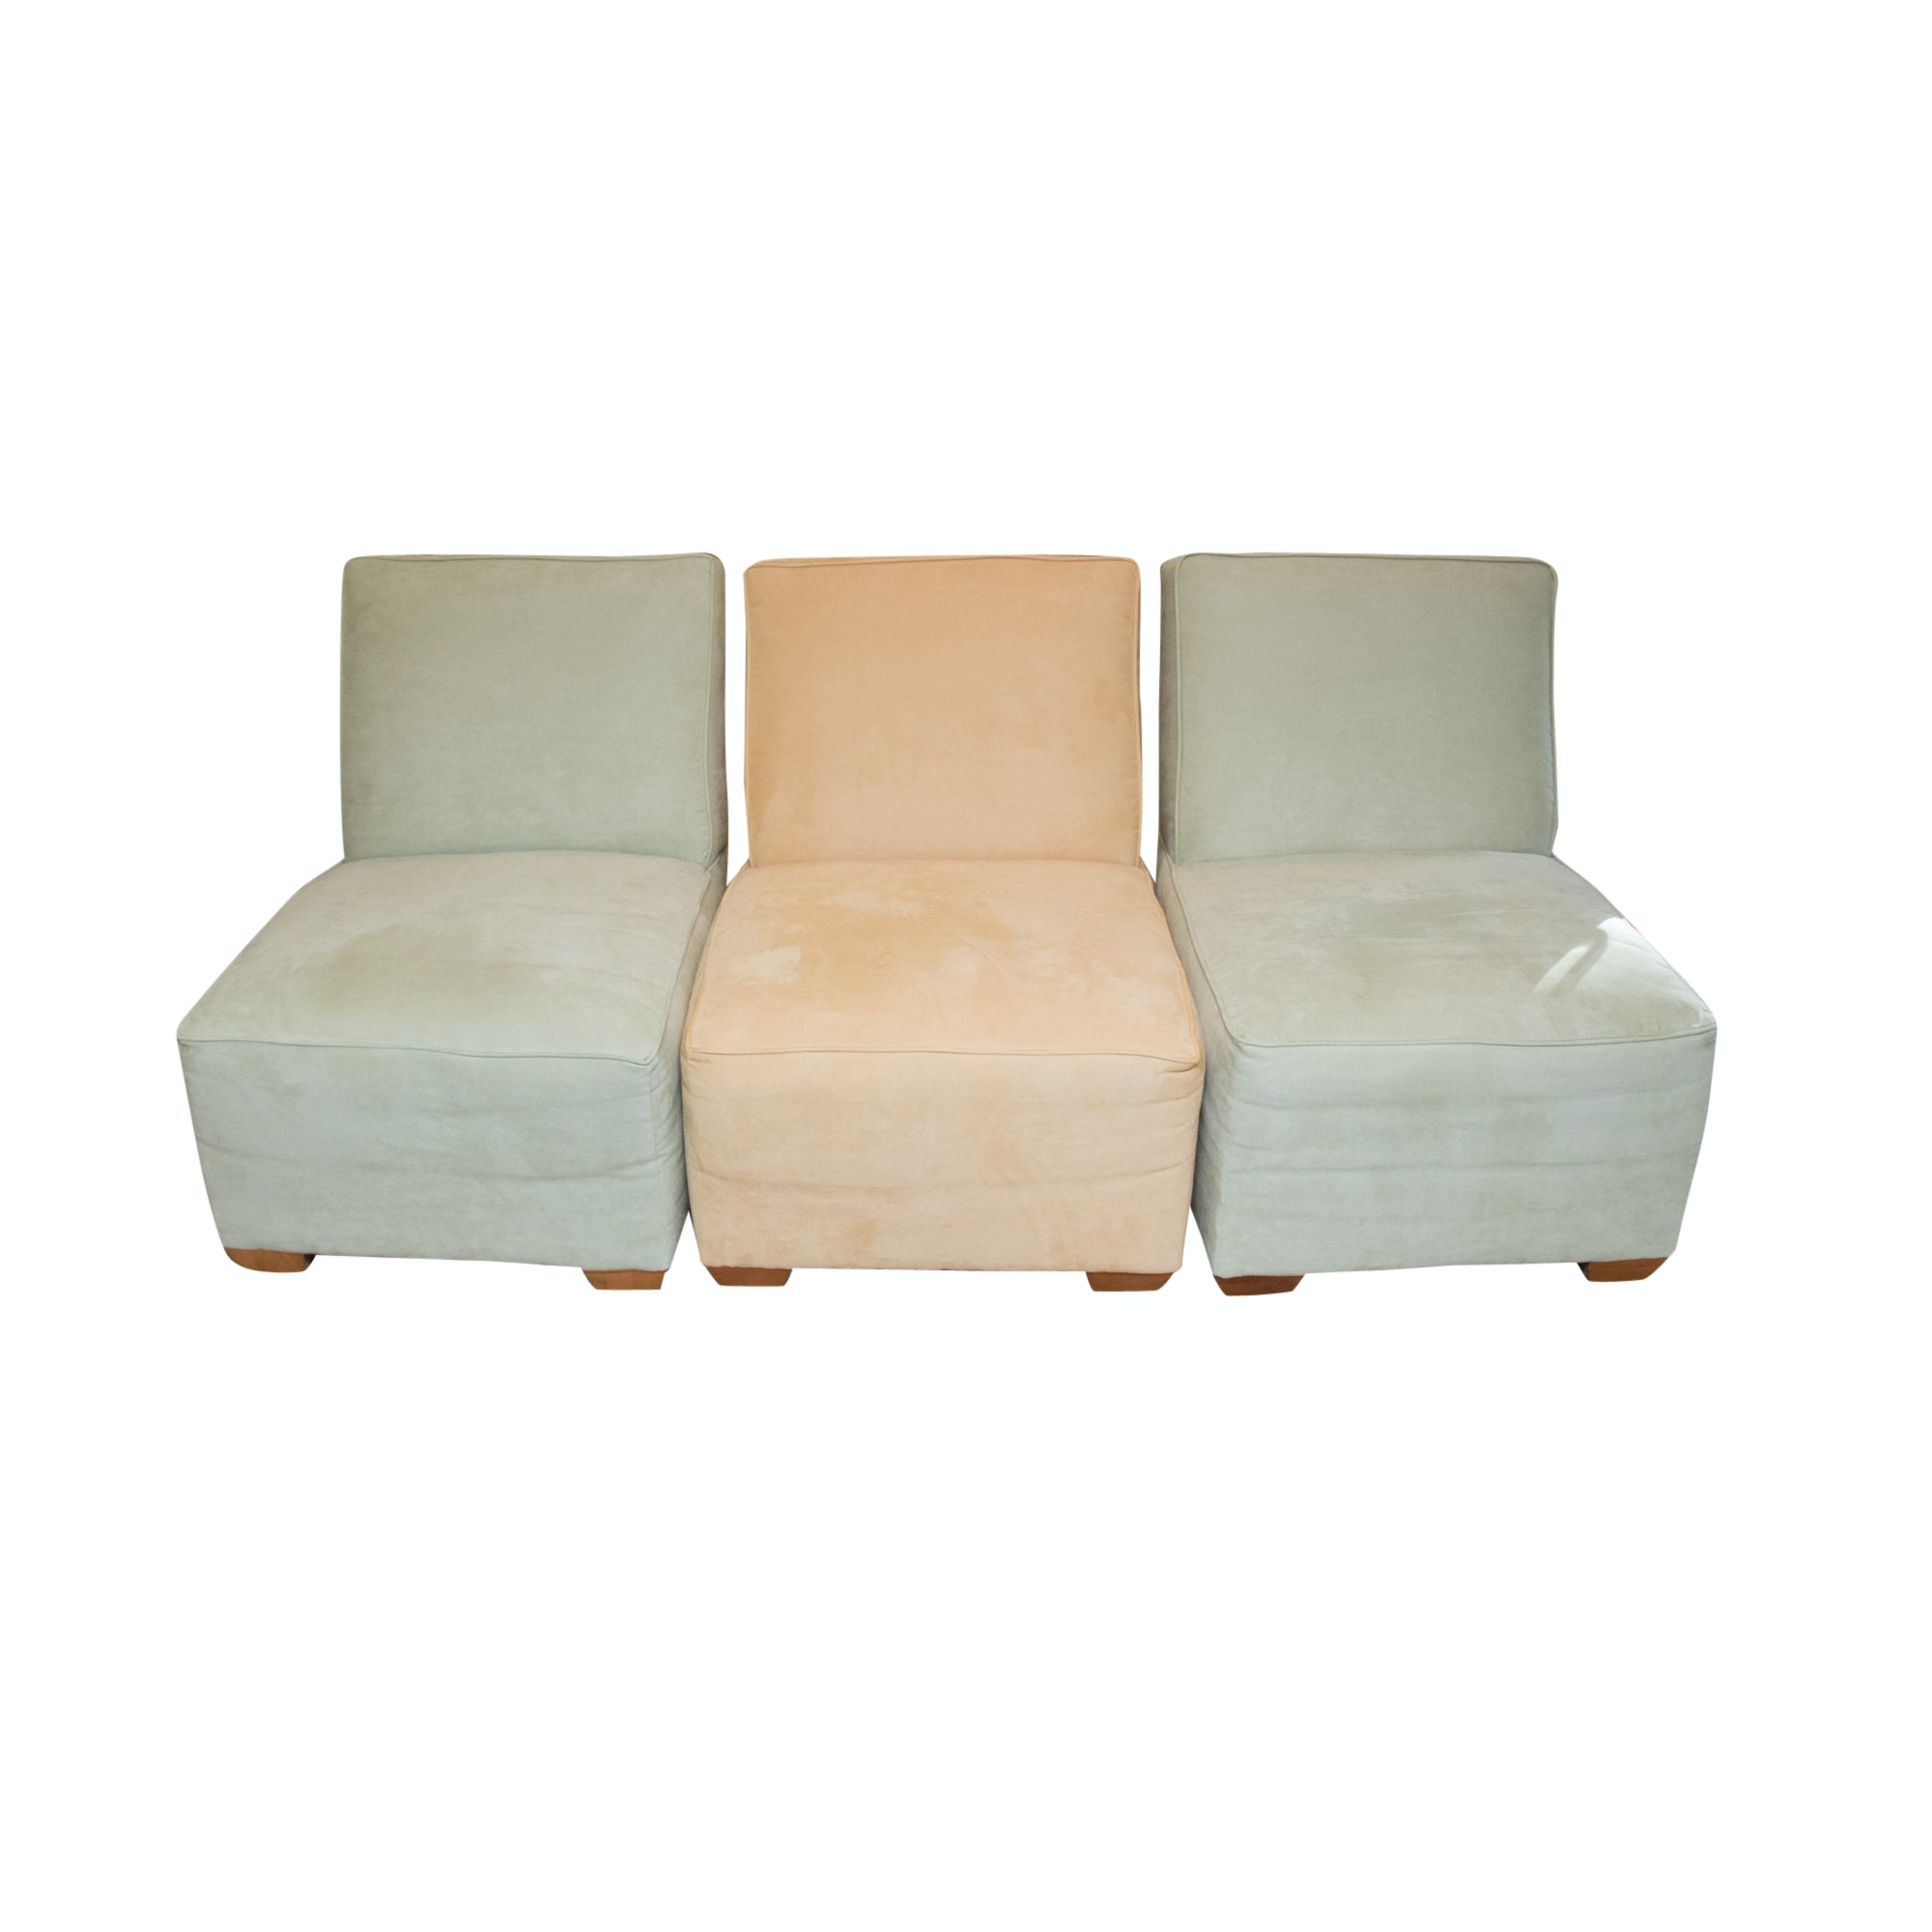 Group of Three Contemporary Slipper Chairs